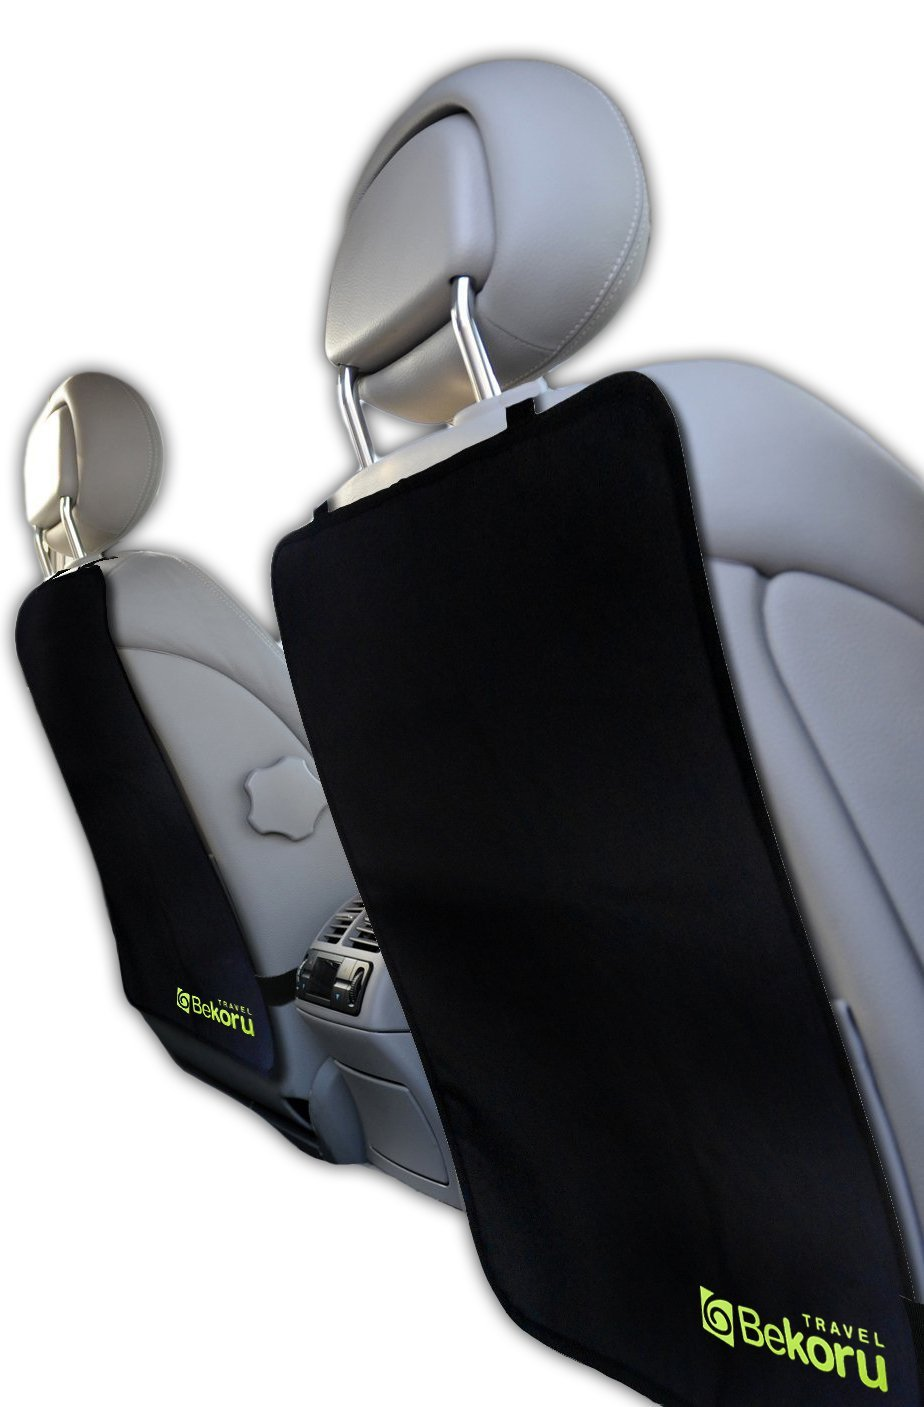 Kick Mats By Bekoru Travel-Premium Large Car Seat Back Protectors (2 Pack) –Fits Most Vehicles -Simple Installation –Top Quality-Protect Your Investment Now!